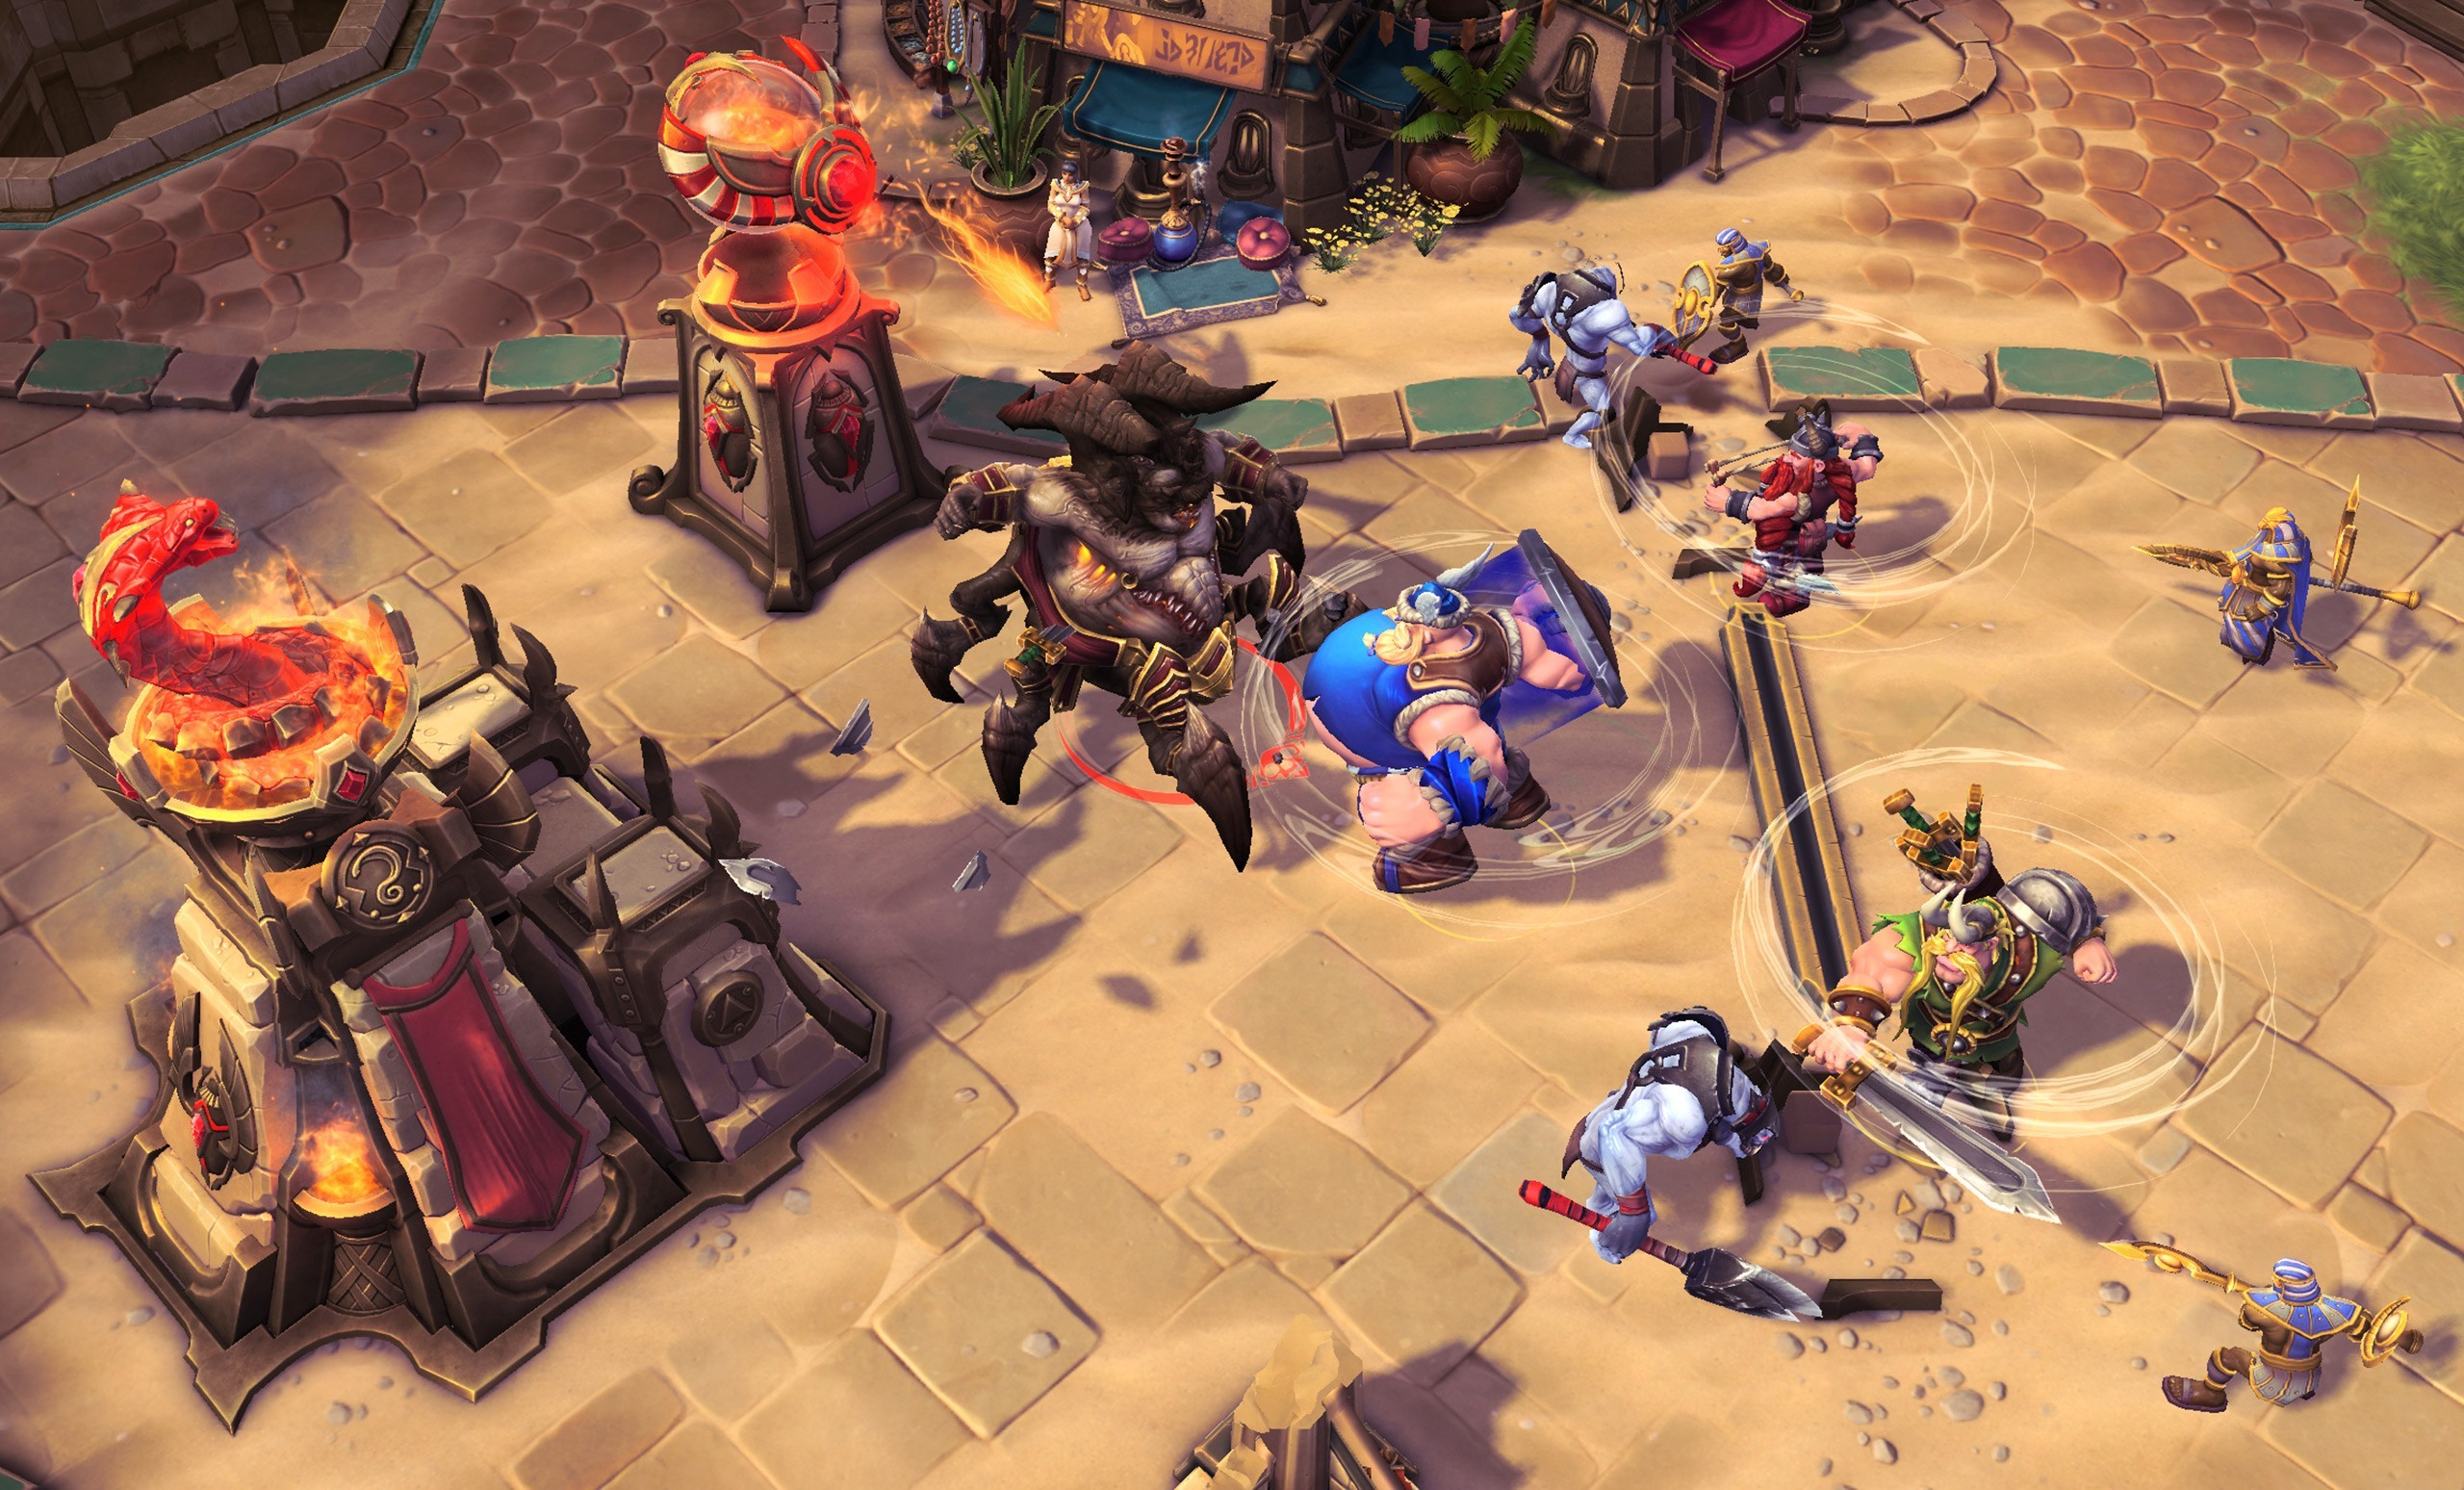 heroes of the storm gets fresh hotfix to drastically improve